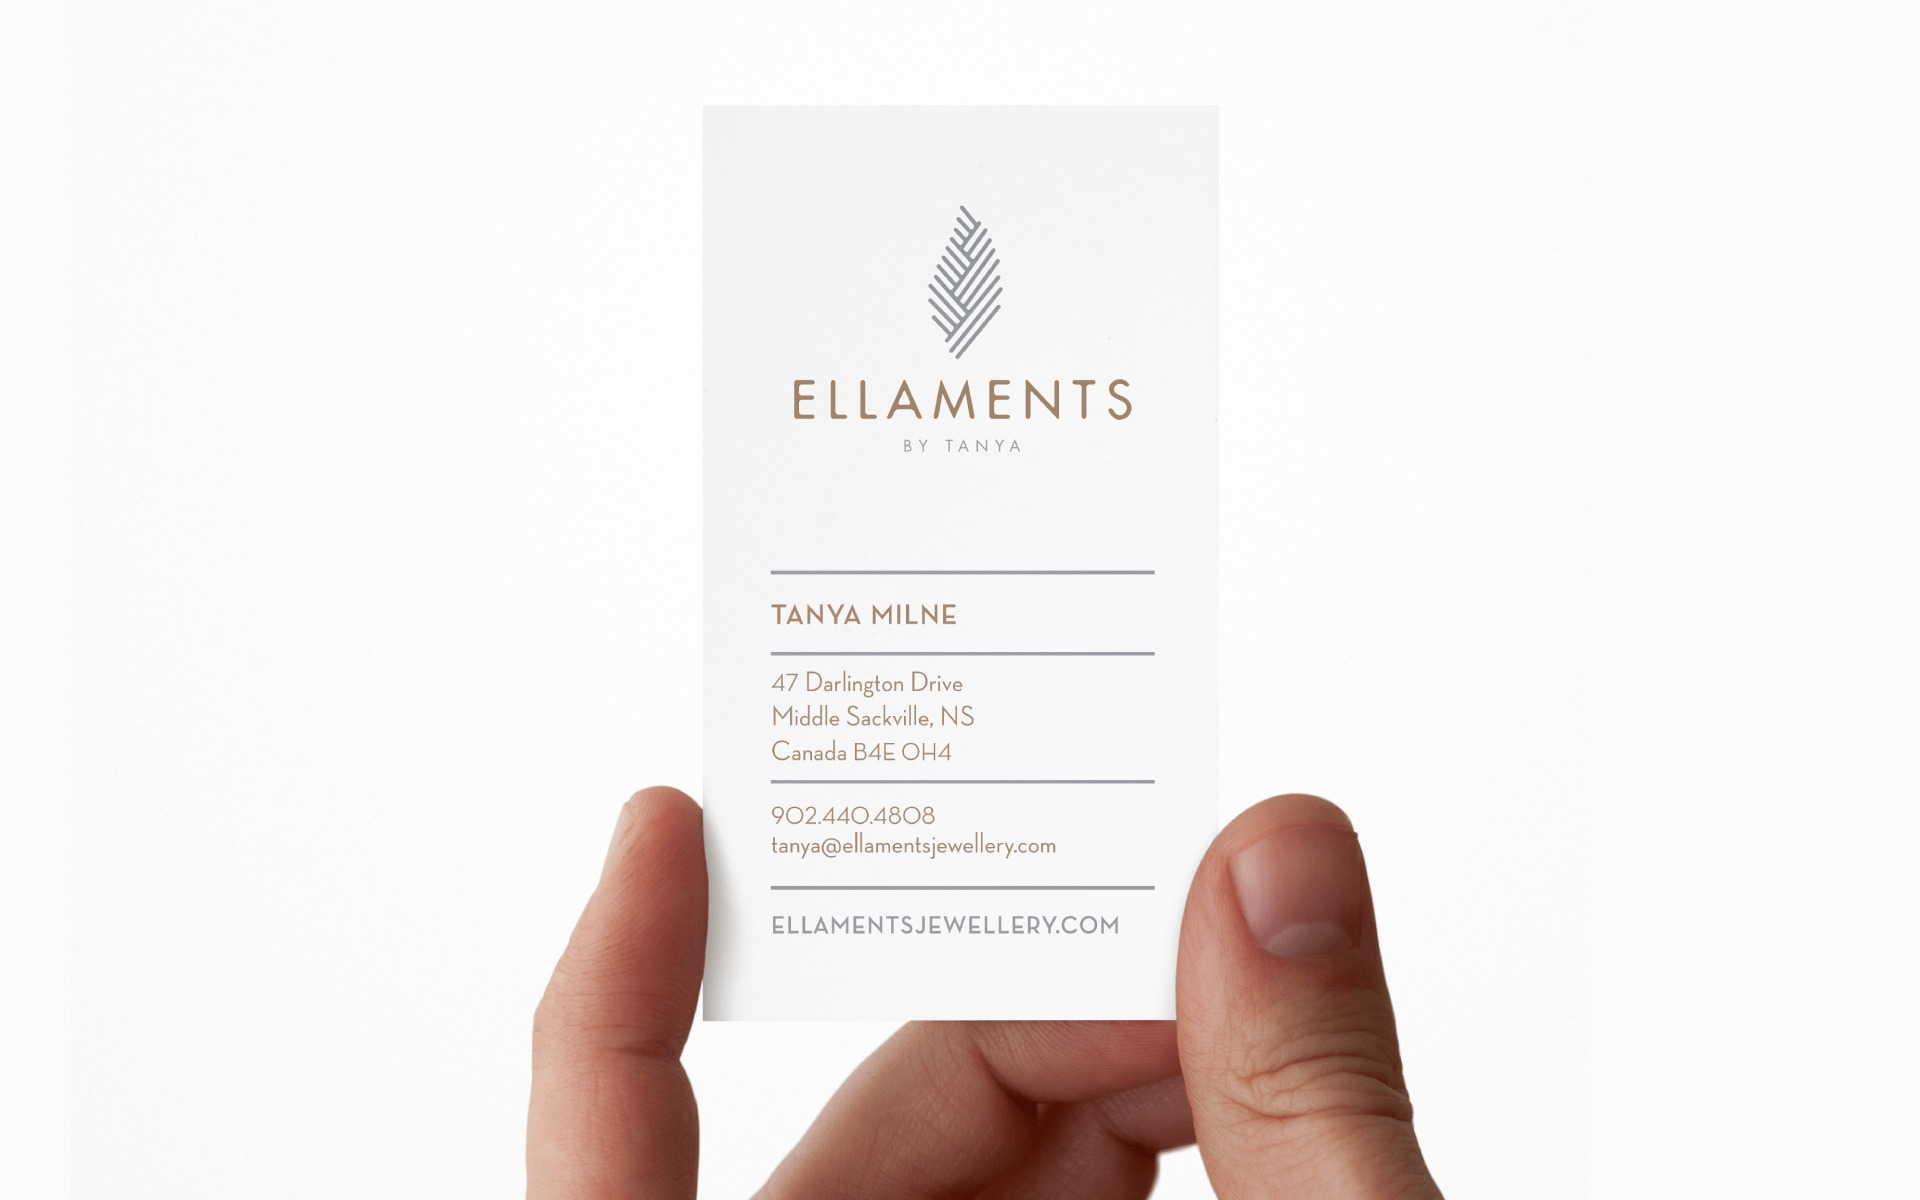 Ellaments Business card design